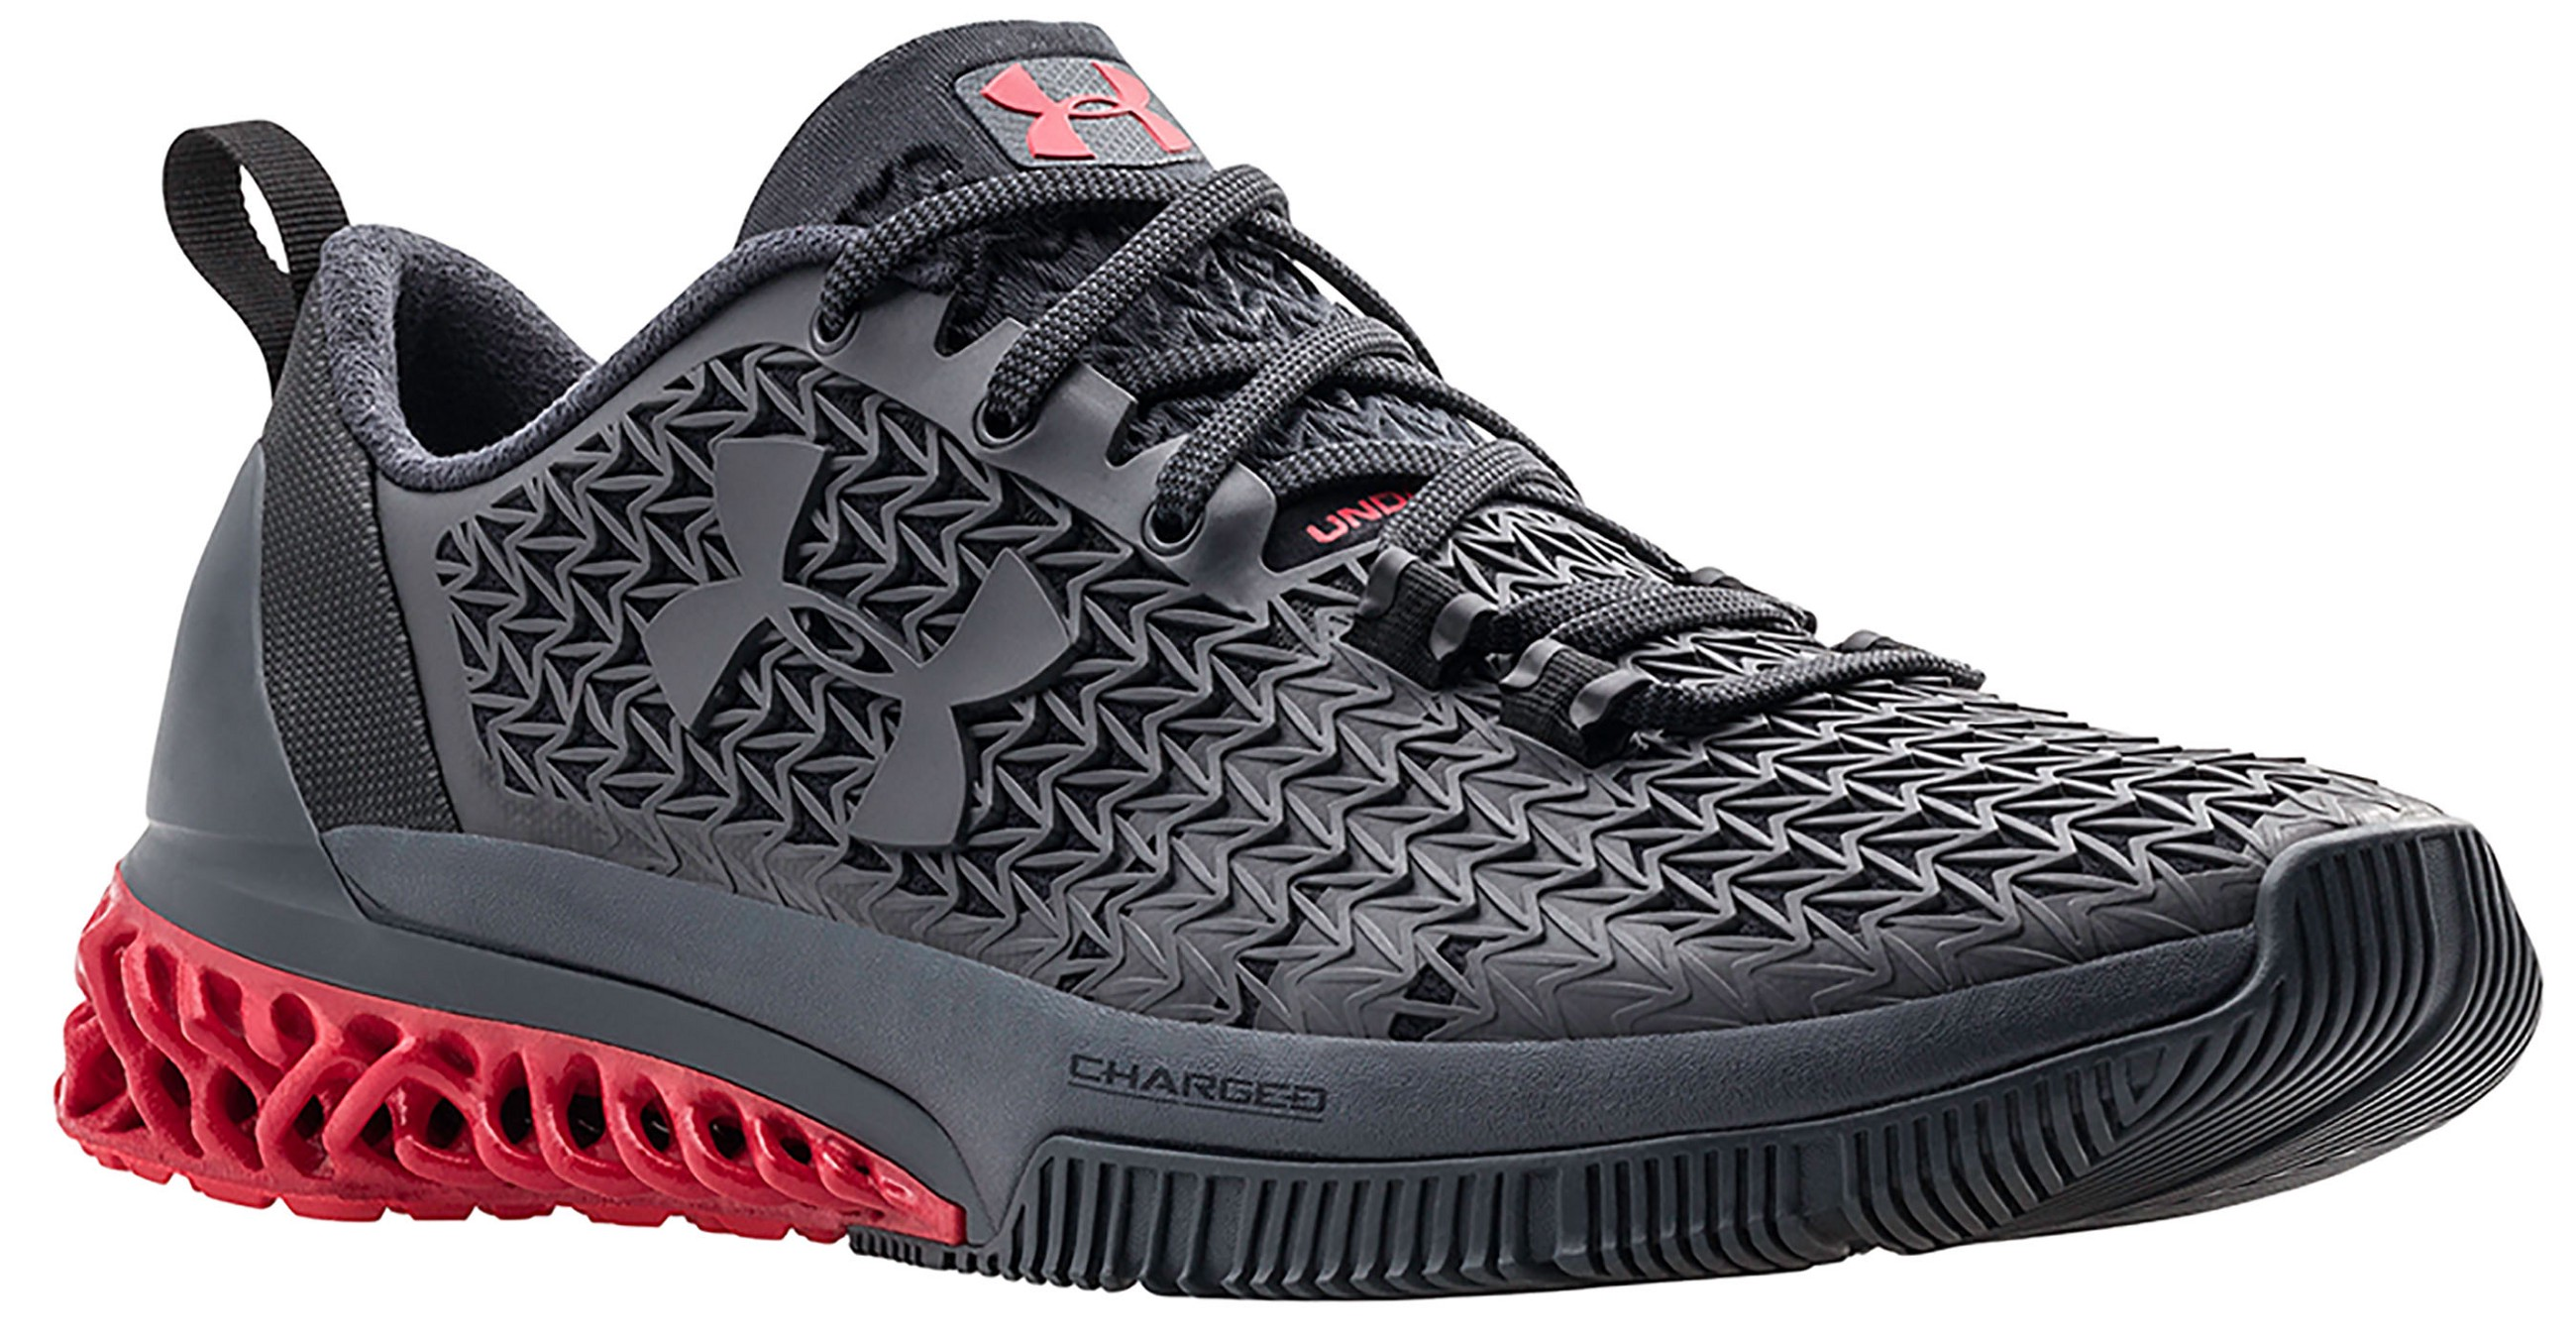 335a8abac How generative design helped Under Armour make its first 3D printed  training shoe